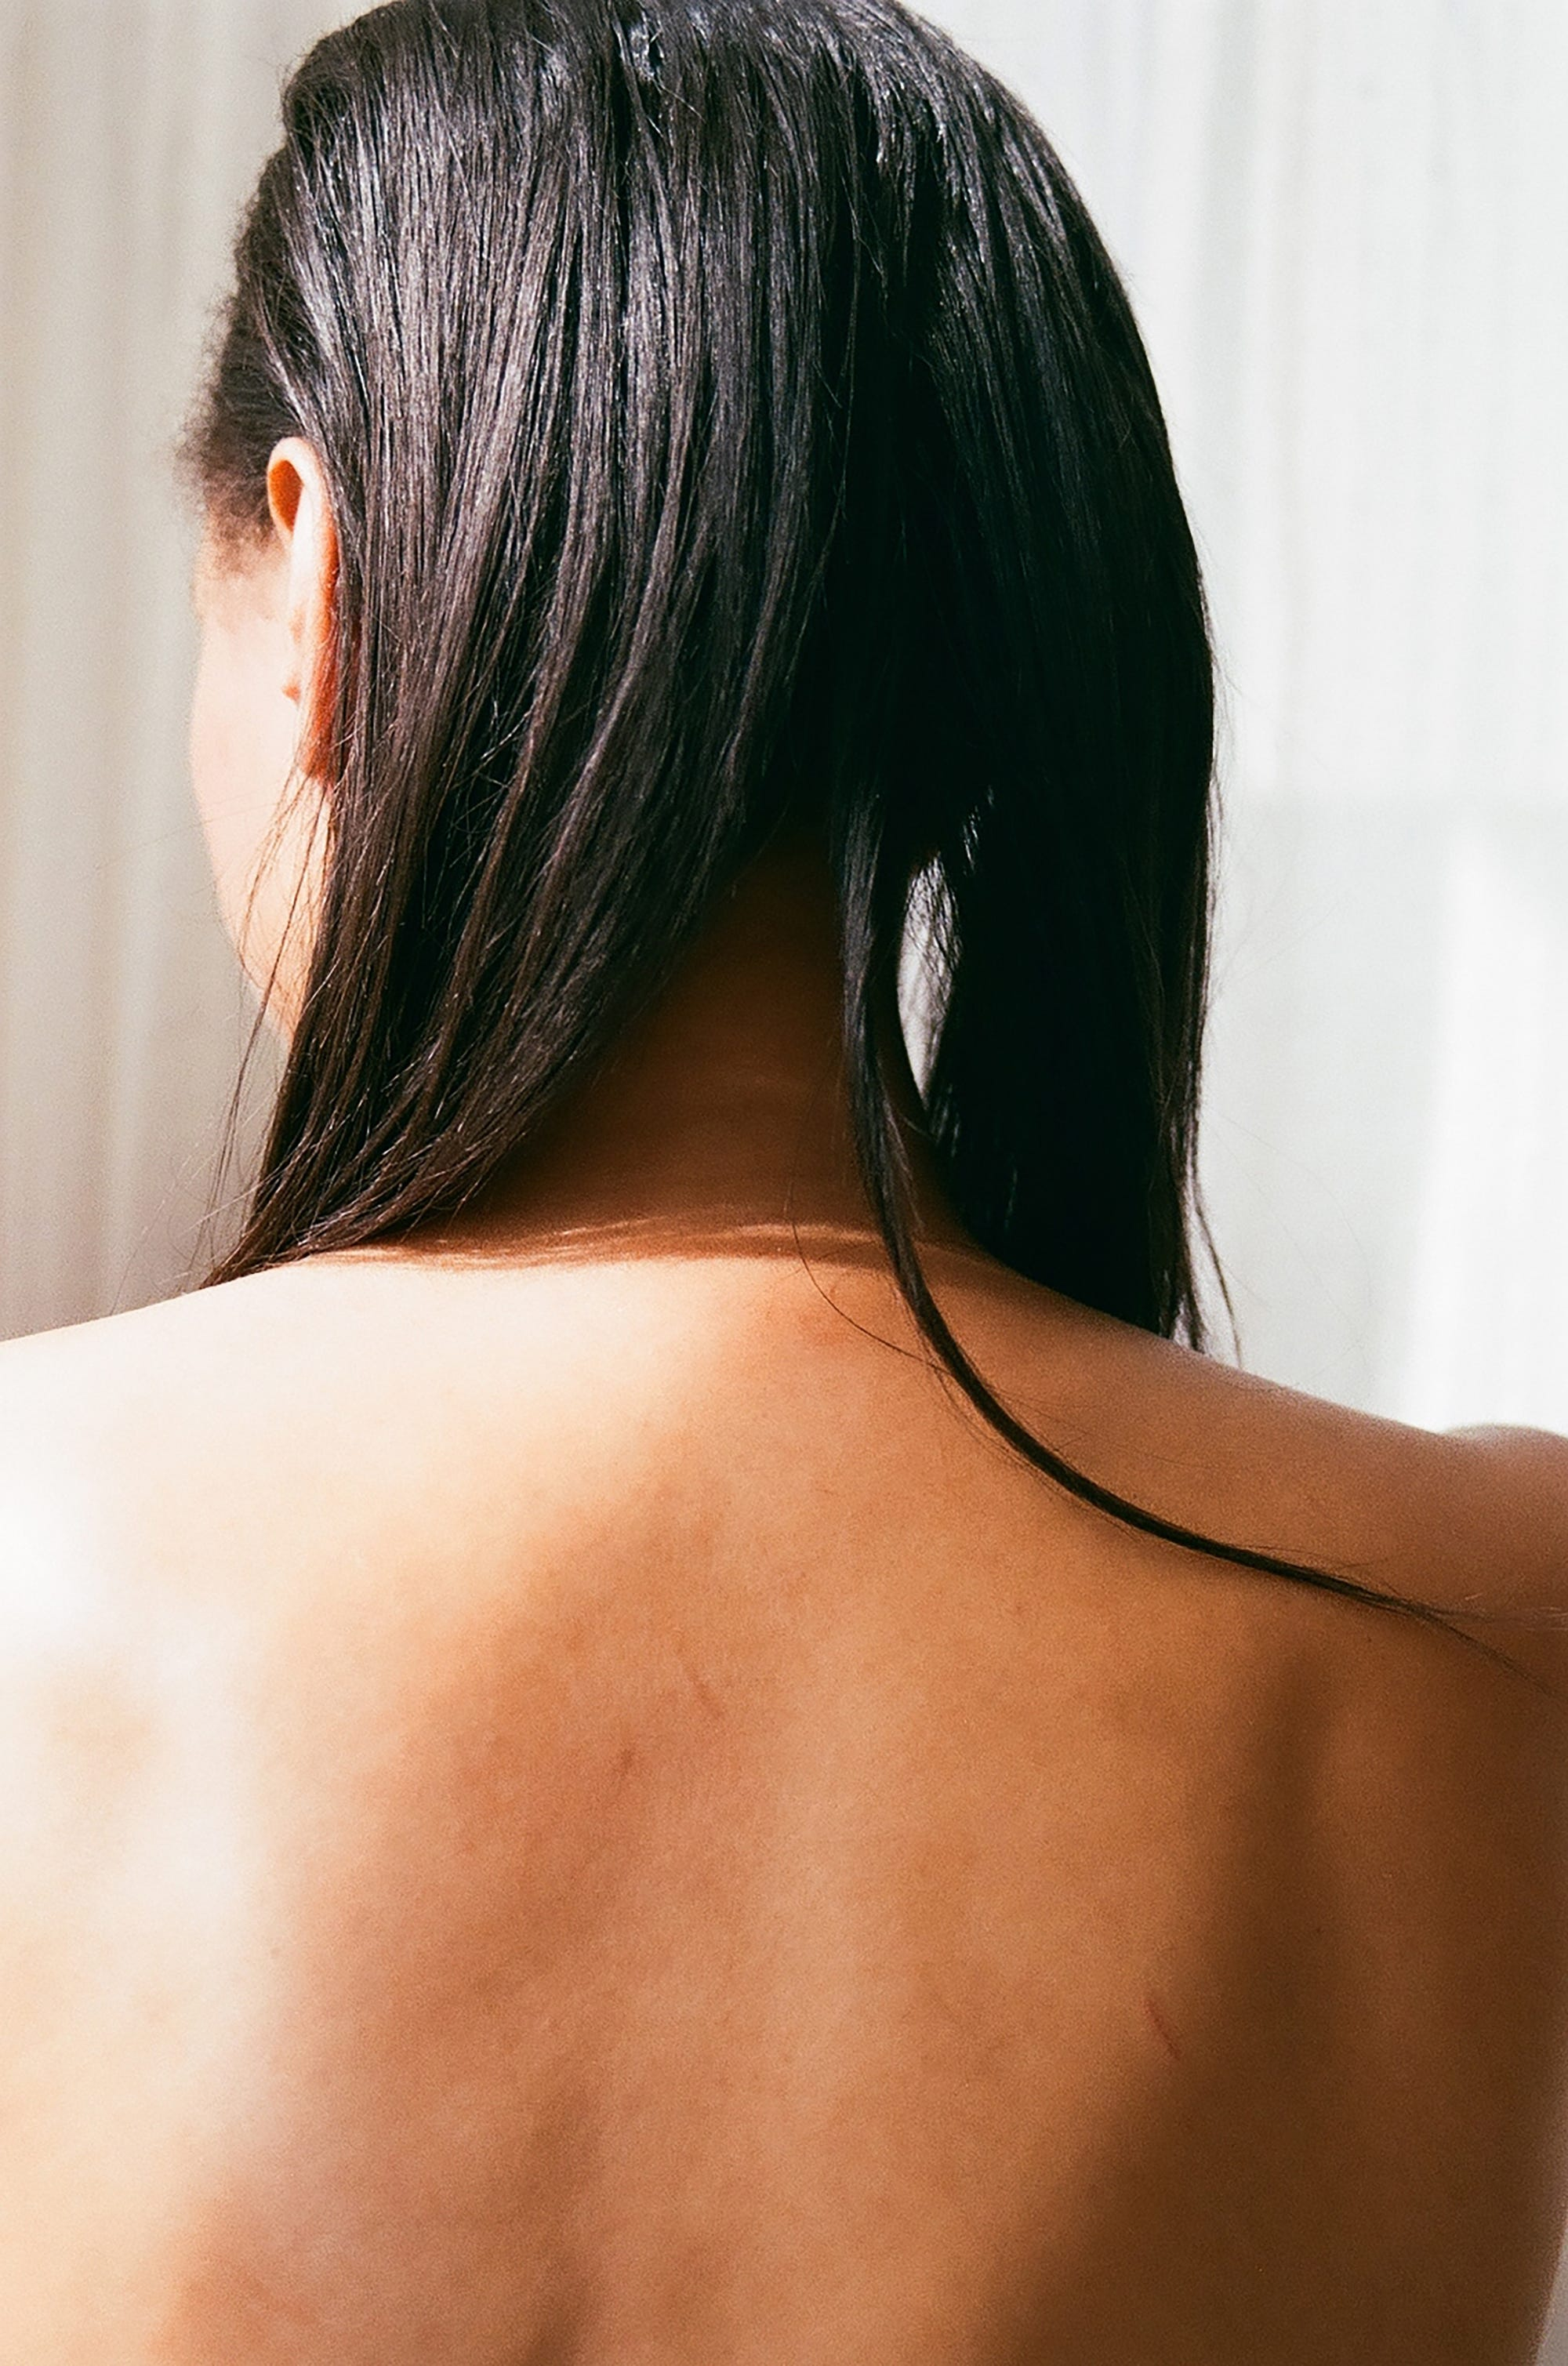 12 People On What Gets Them Through Panic Attacks